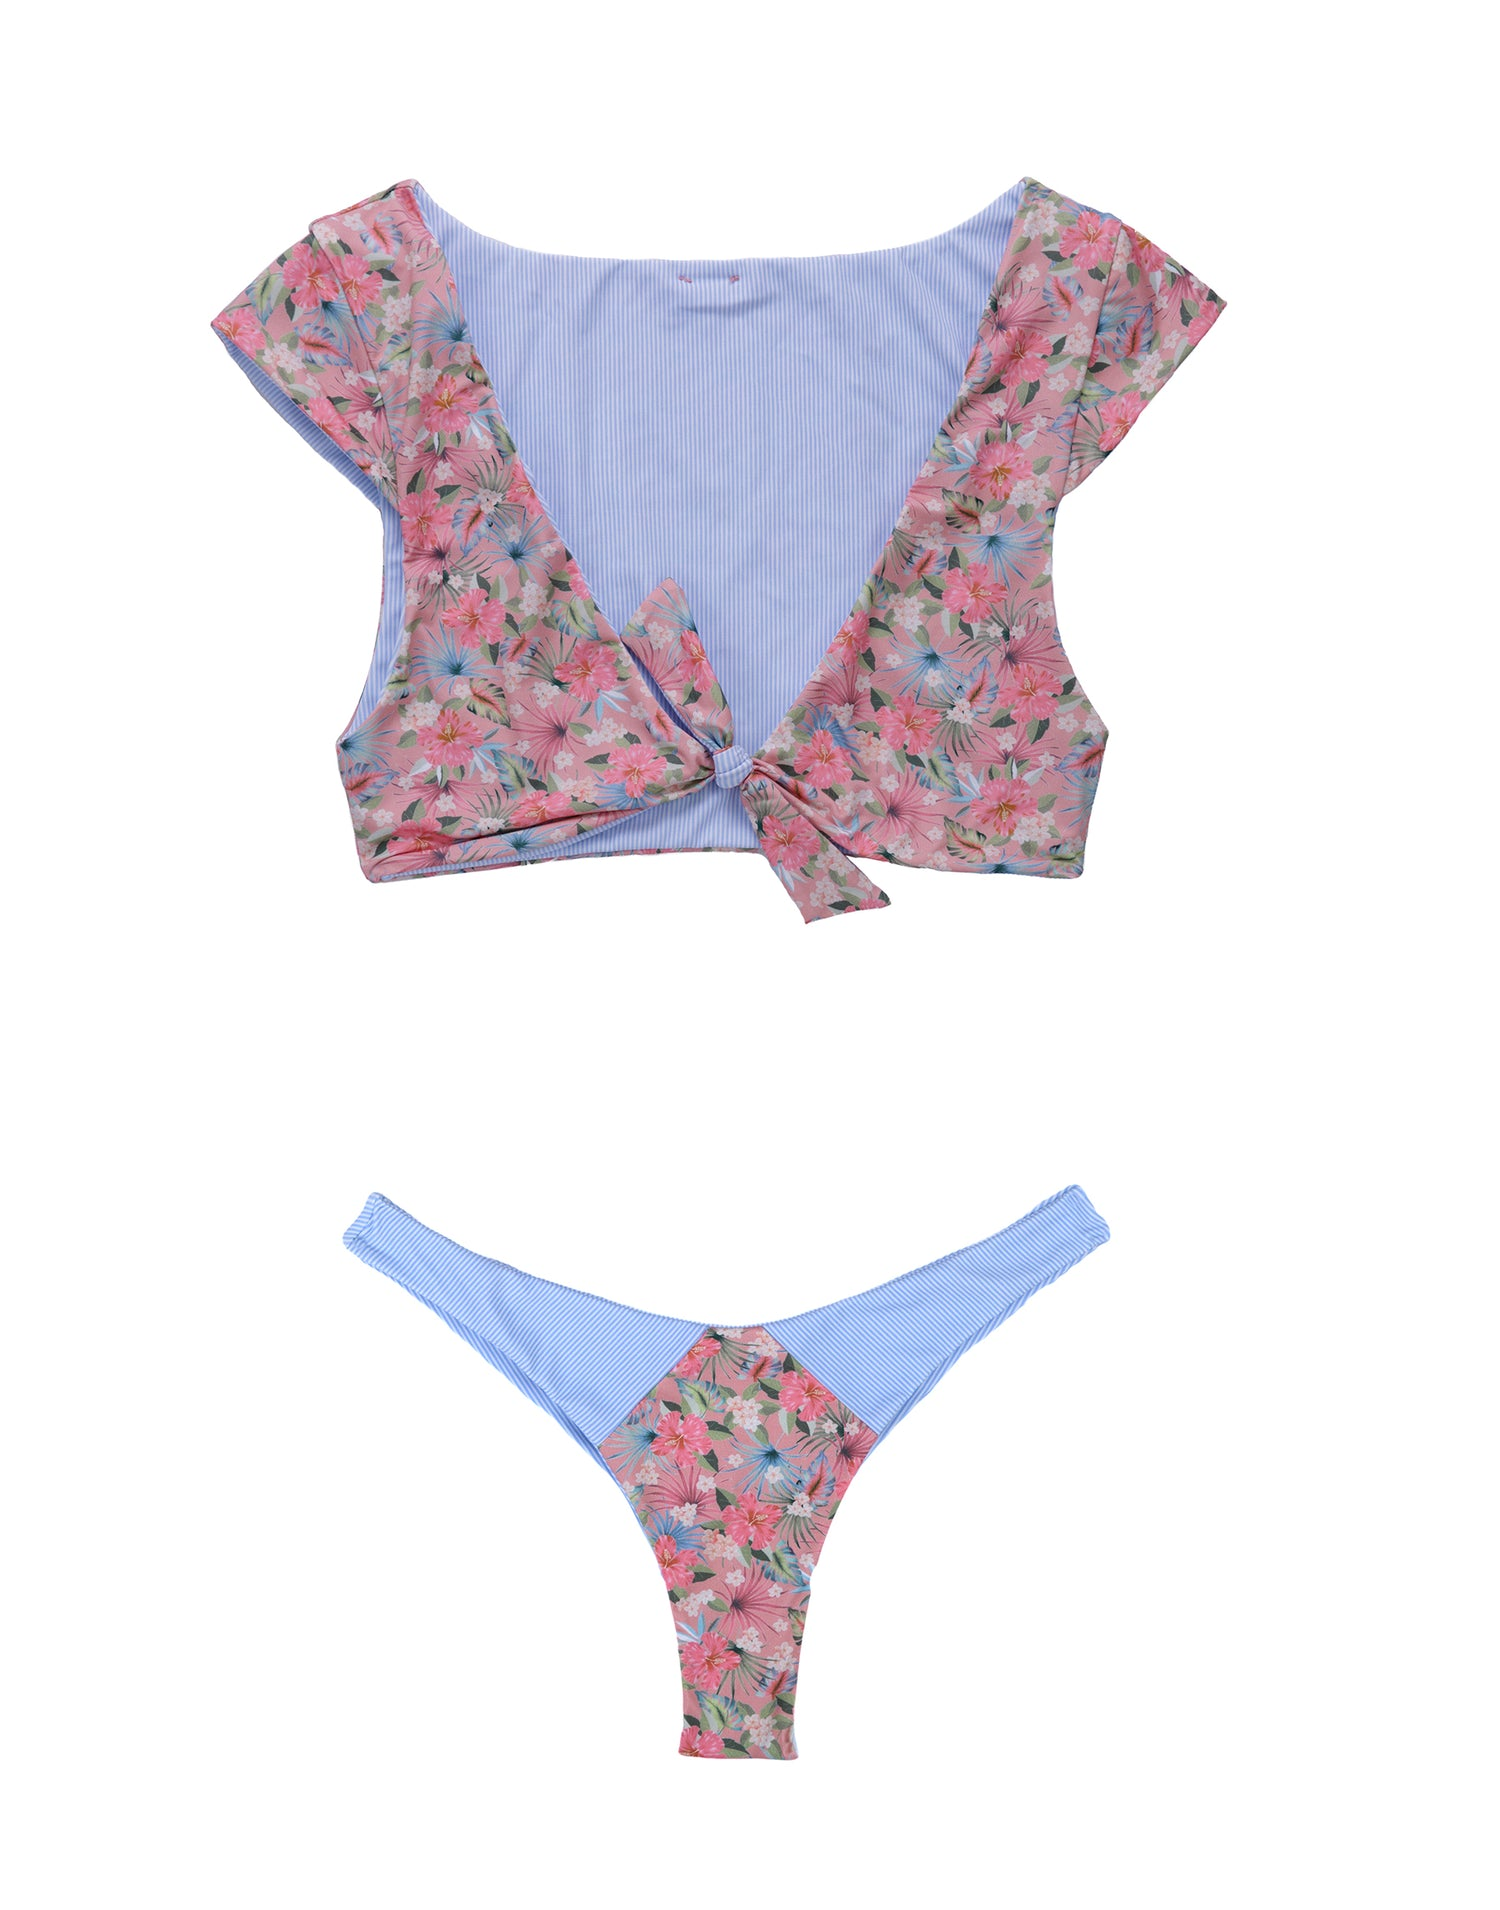 Margeaux Reversible Crop Bikini Top in Marseille Floral - product view